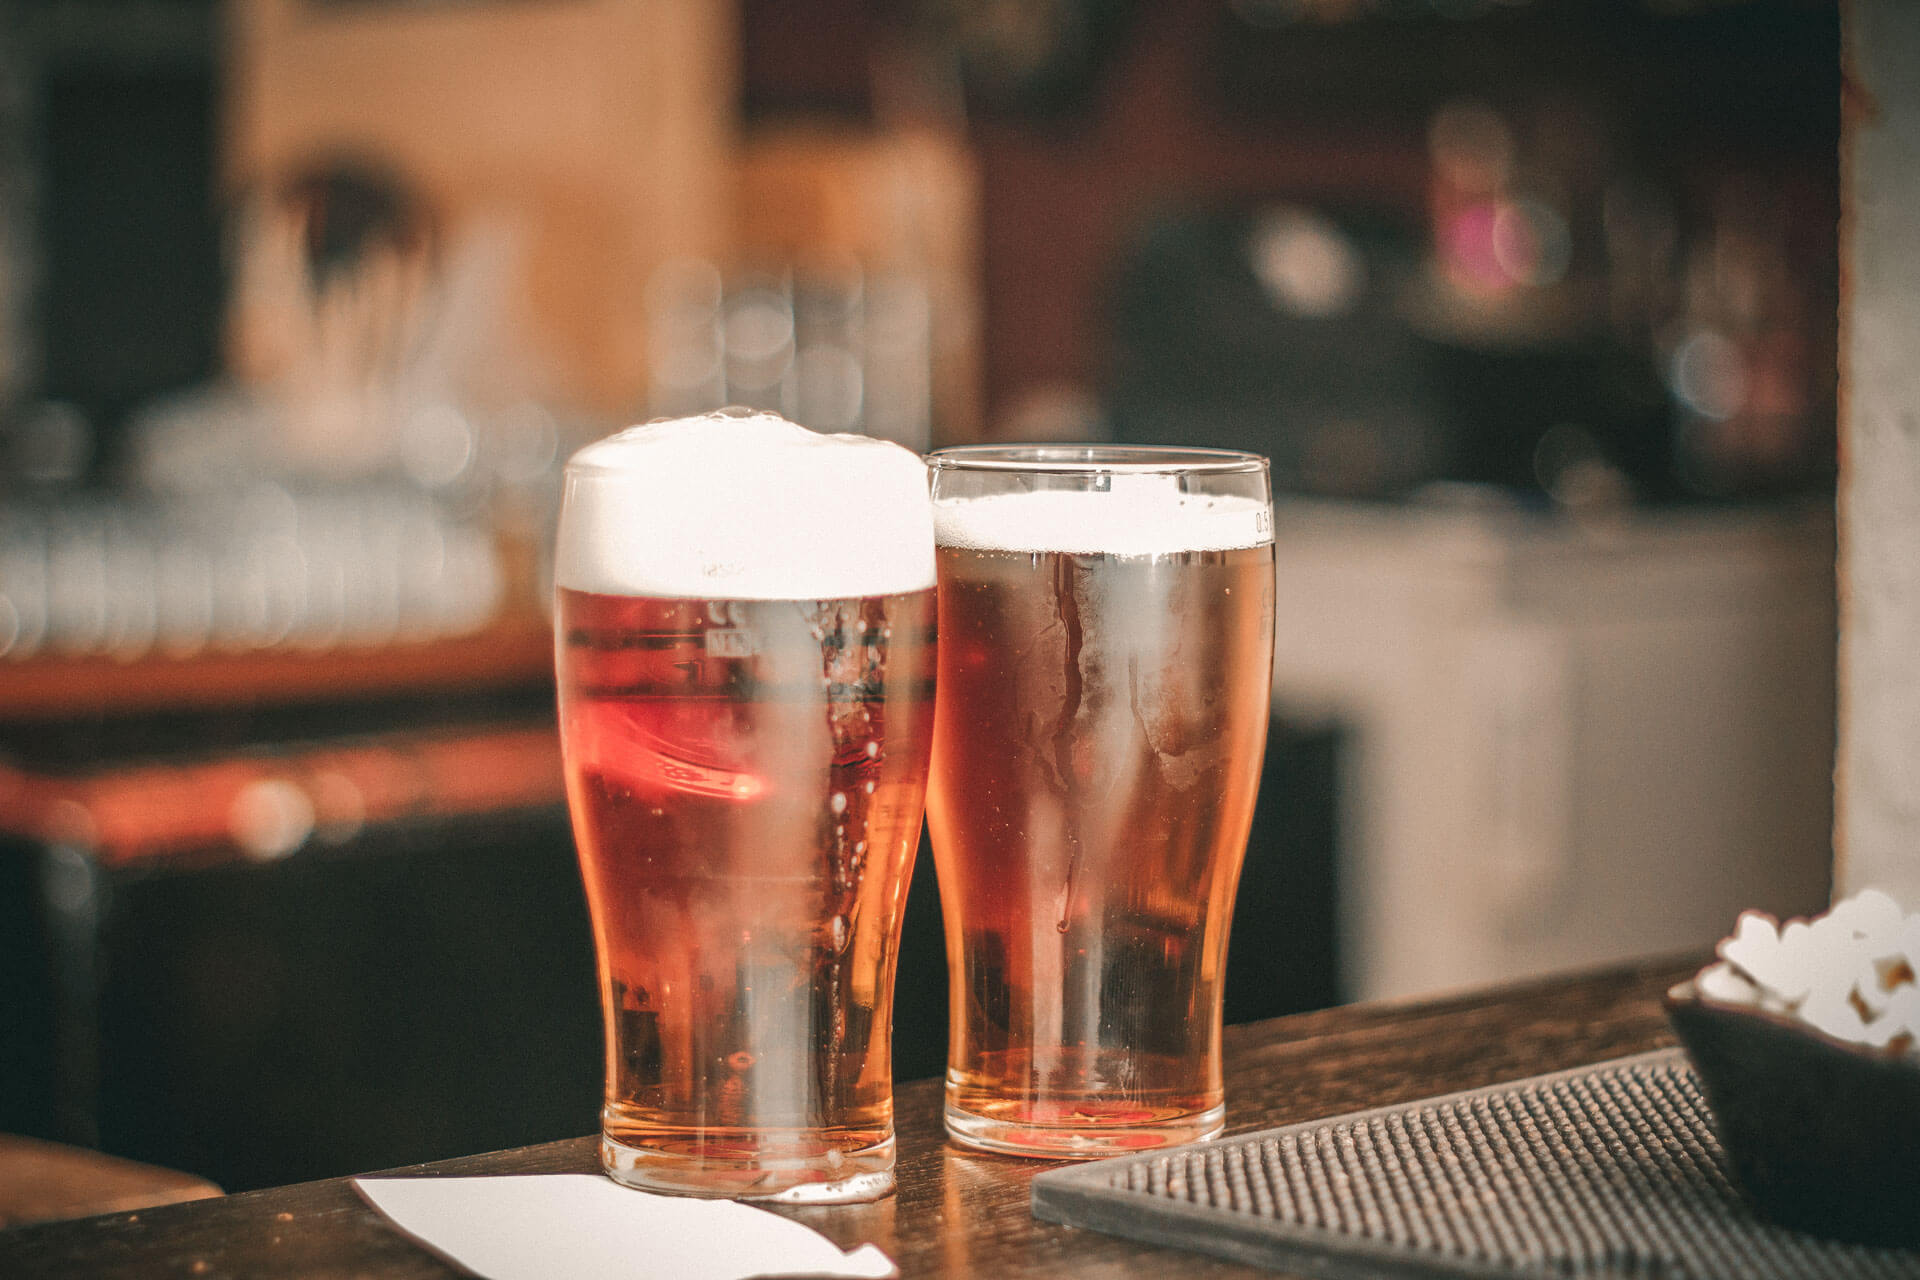 Pints of beer on St. Patrick's Day